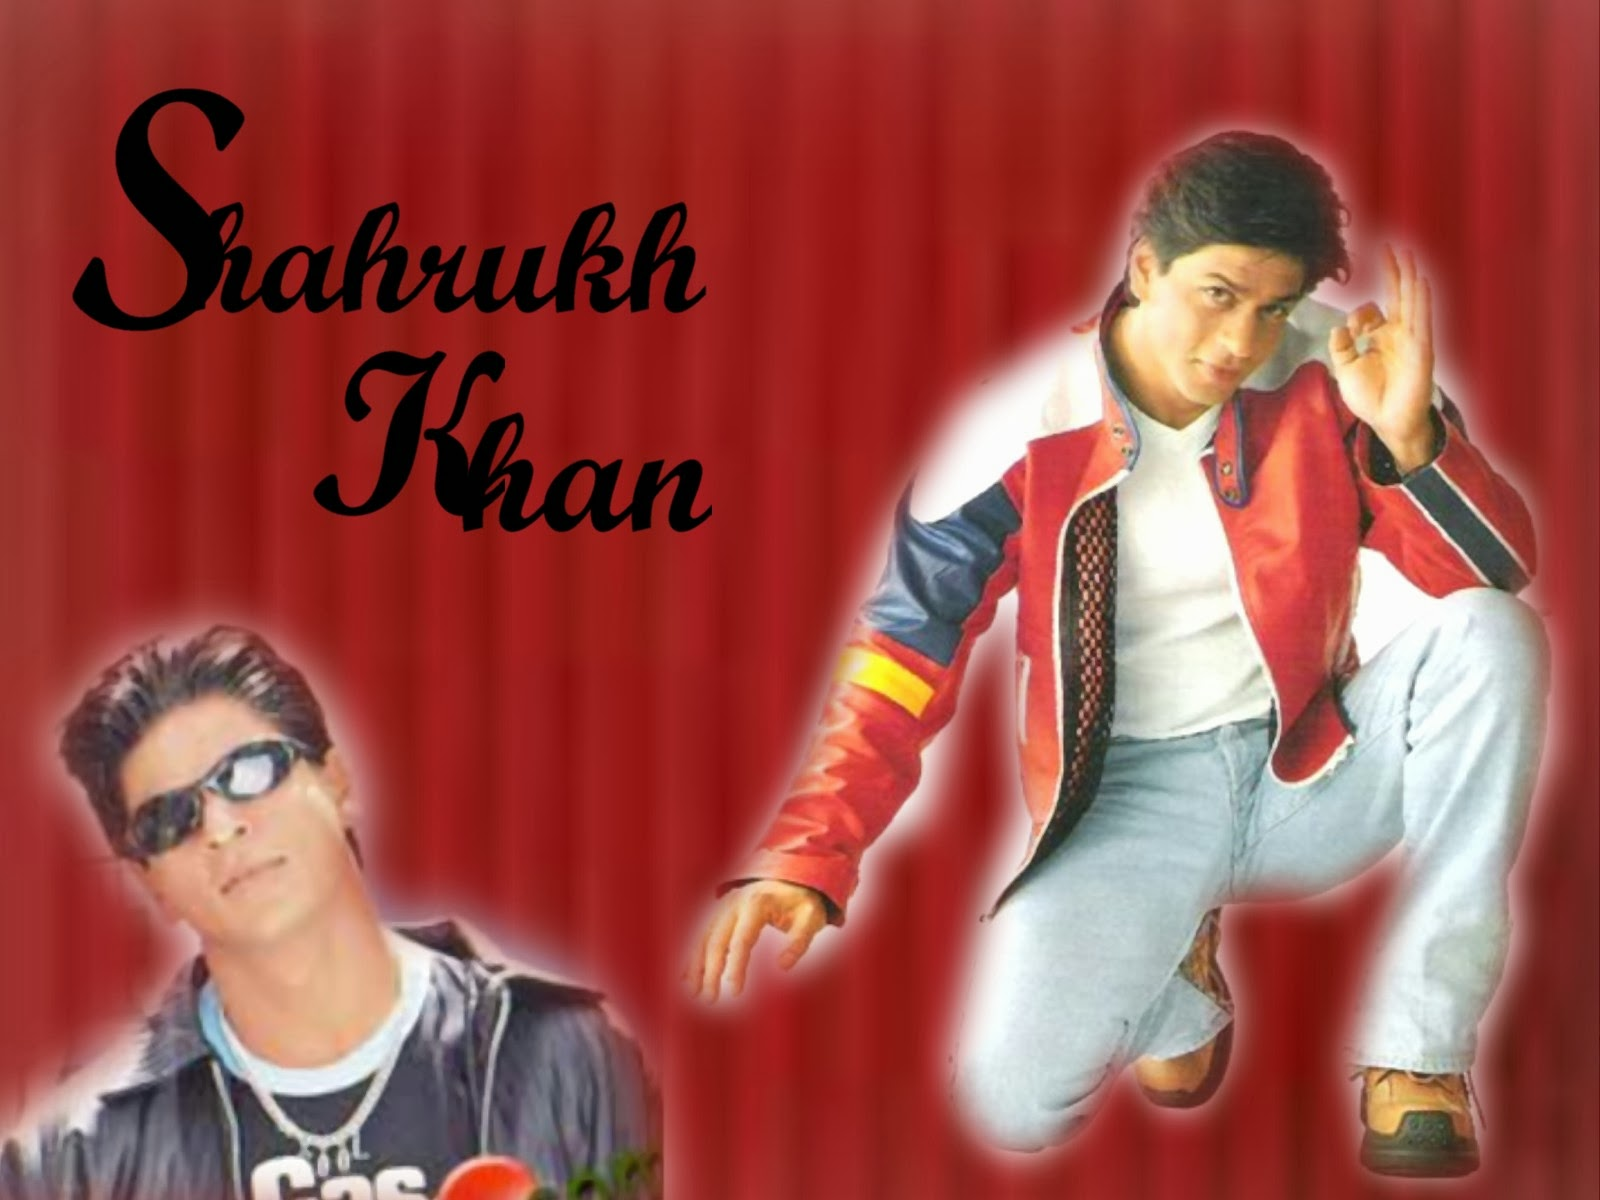 Bollywood actor shahrukh khan wallpapers hd desktop - Shahrukh khan cool wallpaper ...